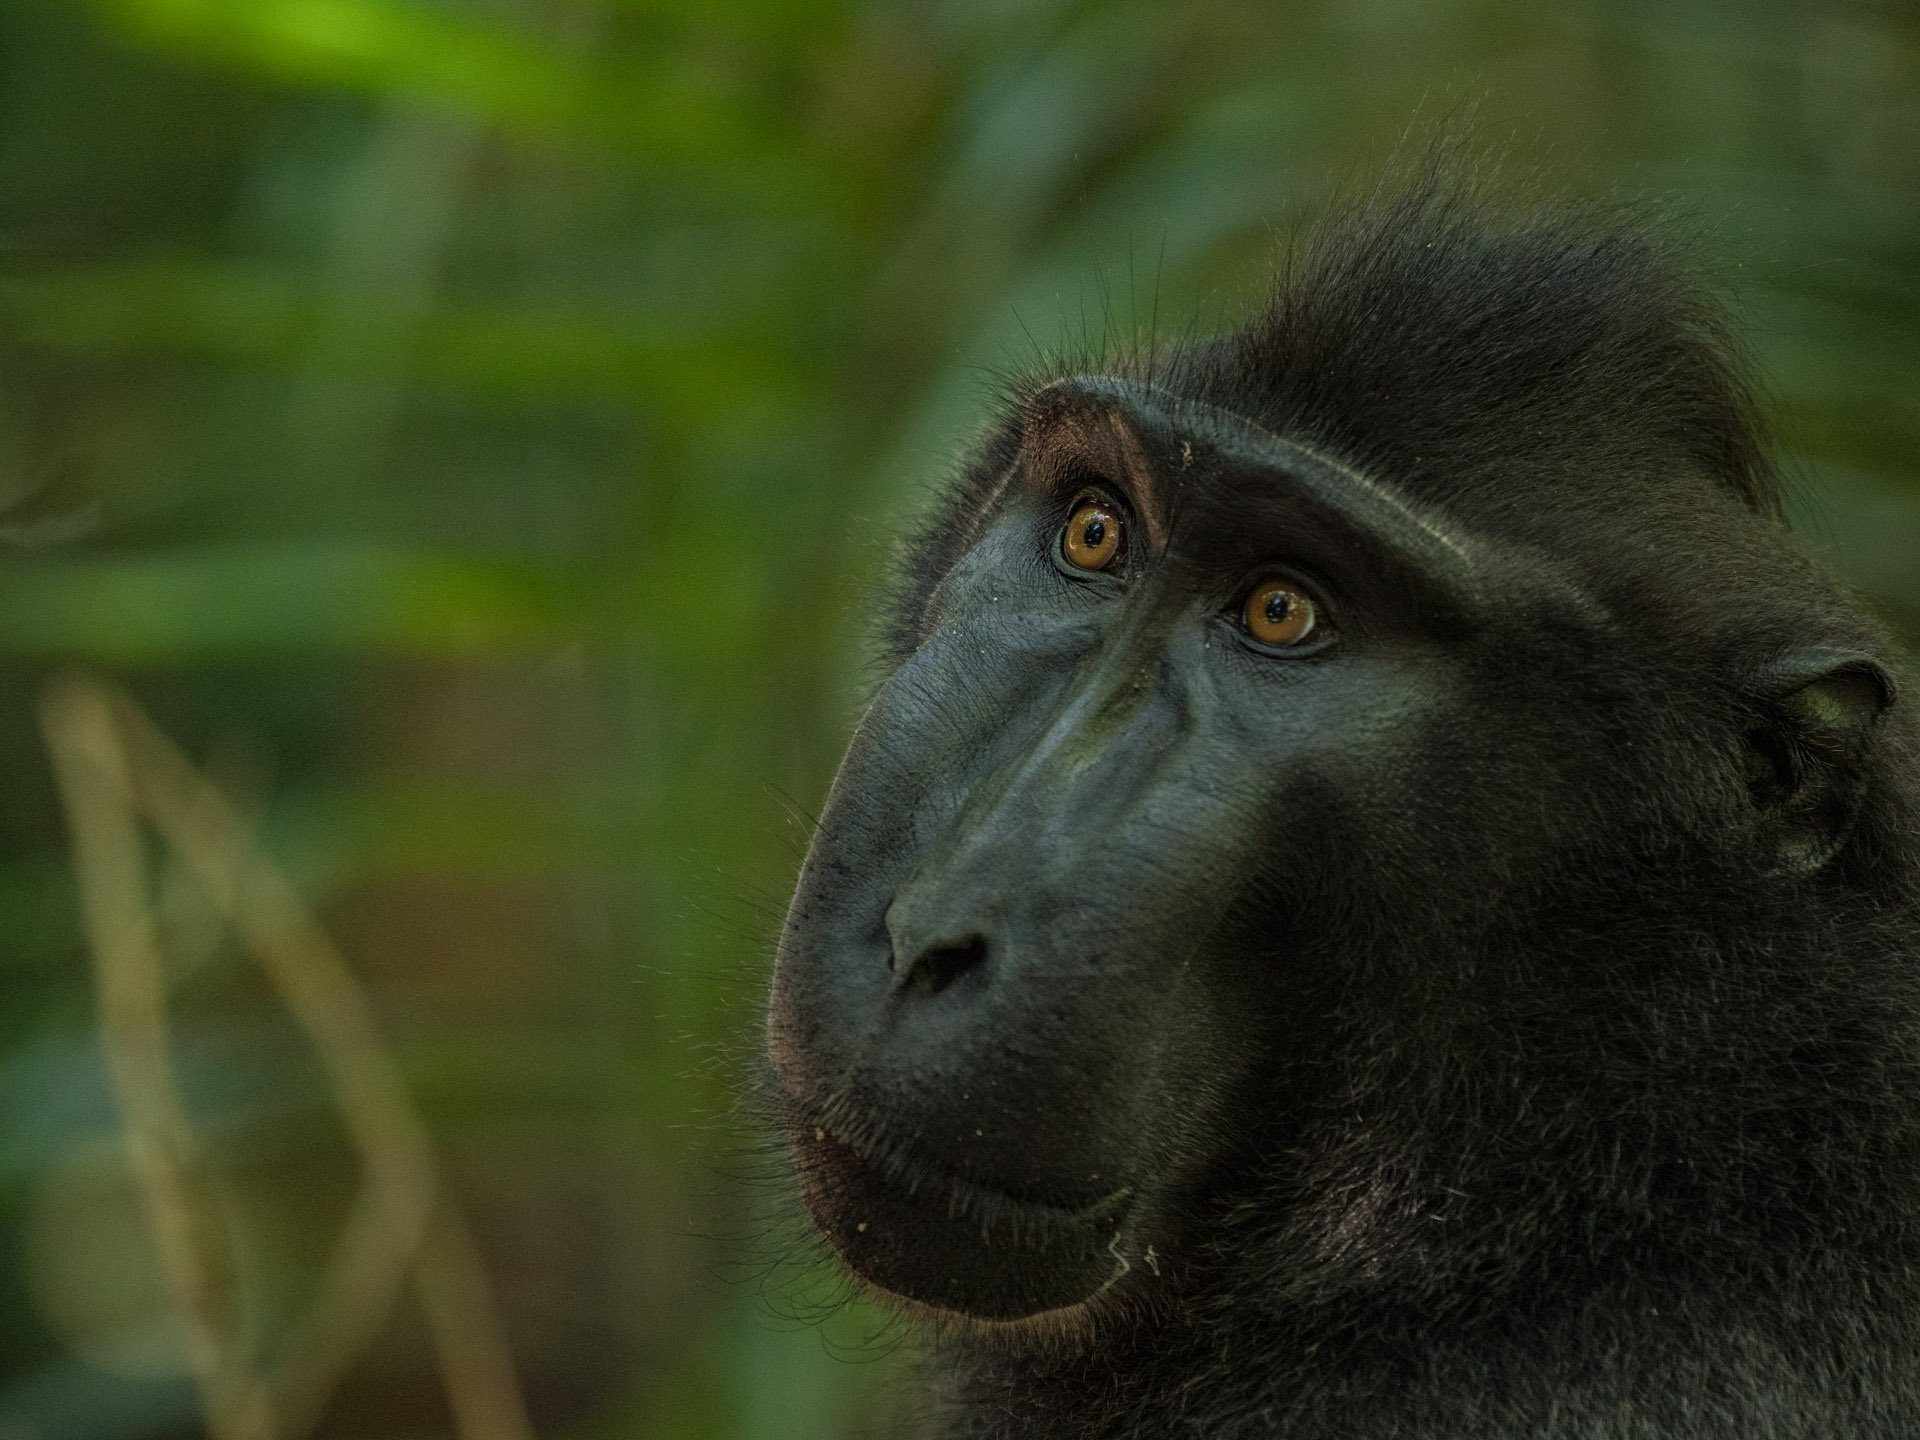 Black crested macaque monkey